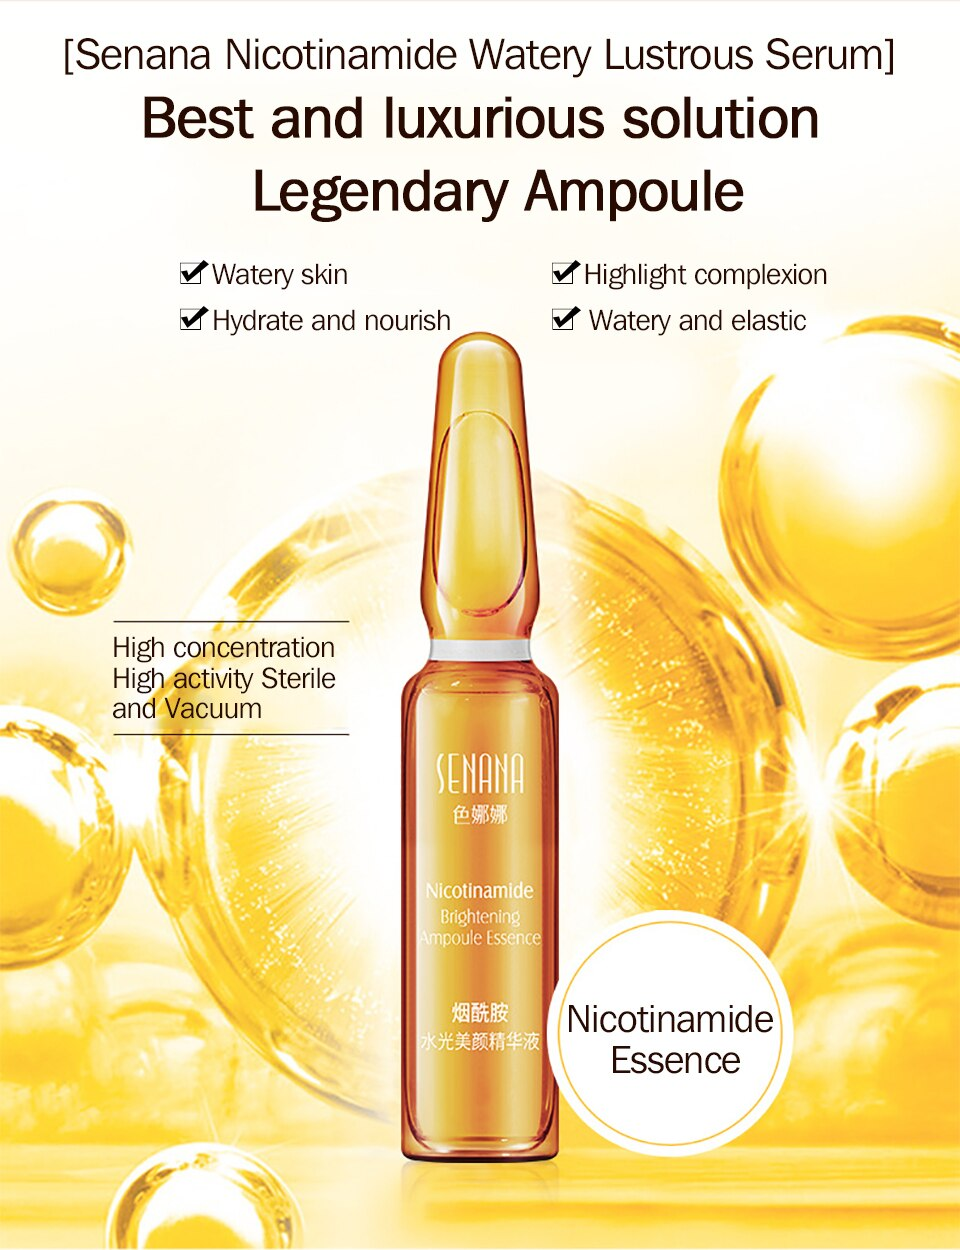 VIBRANT GLAMOUR Niacinamide Anti-Aging Face Serum Gold Ampoule Essence Whitening Moisturizing Lifting Firming Skin Care